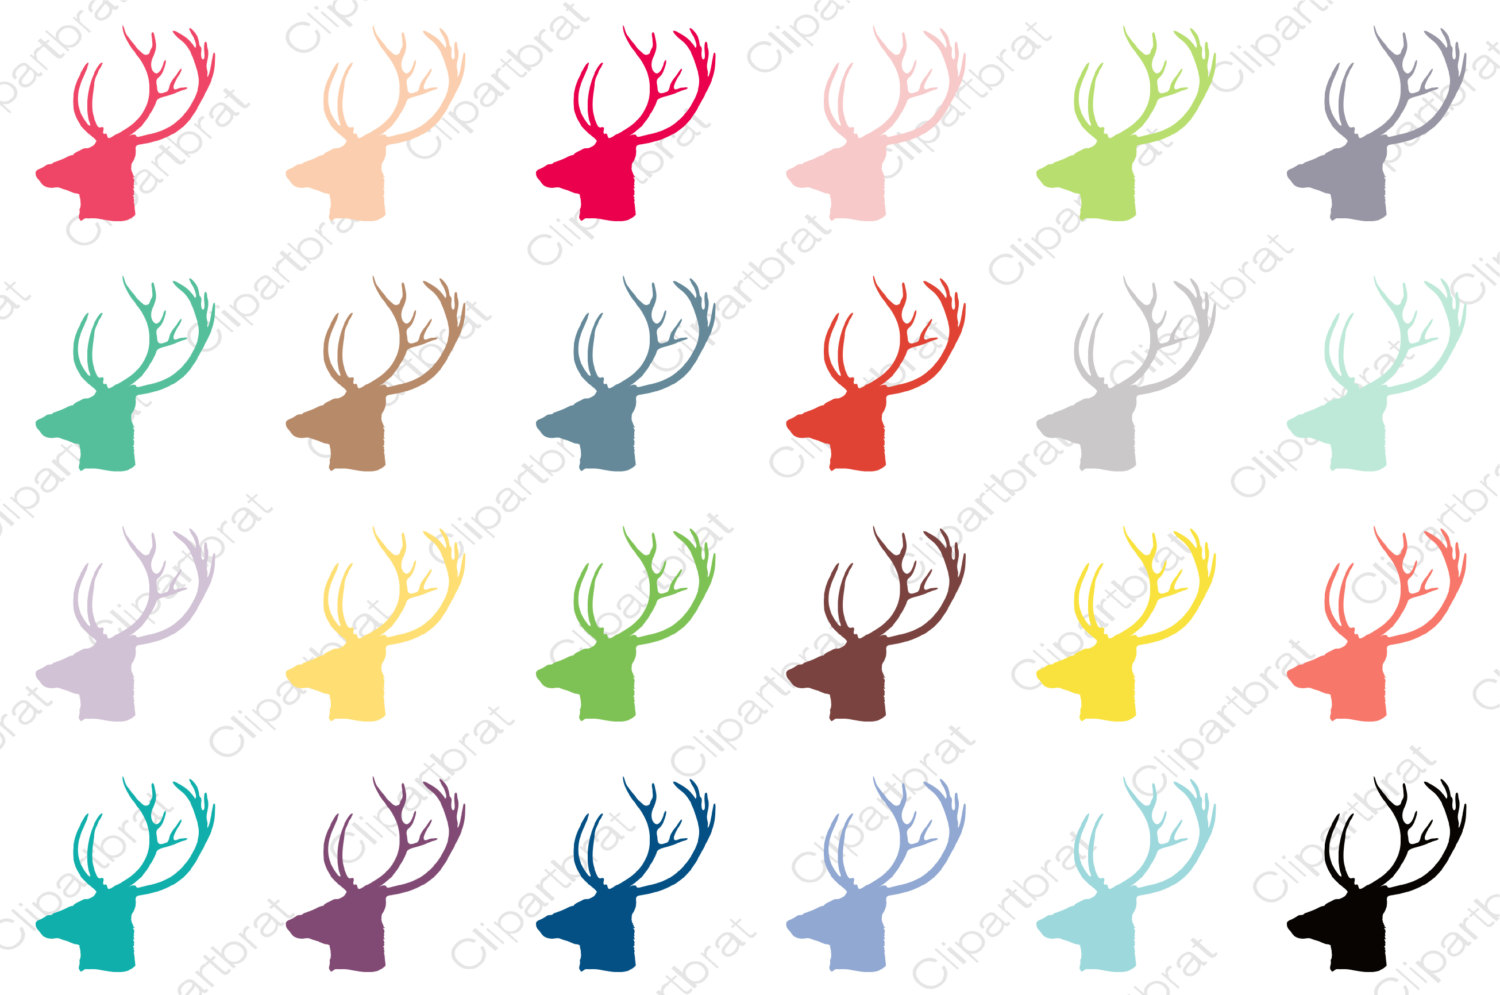 DEER HEAD Clipart Commercial Use Clipart Buck Antlers Graphic 2016.